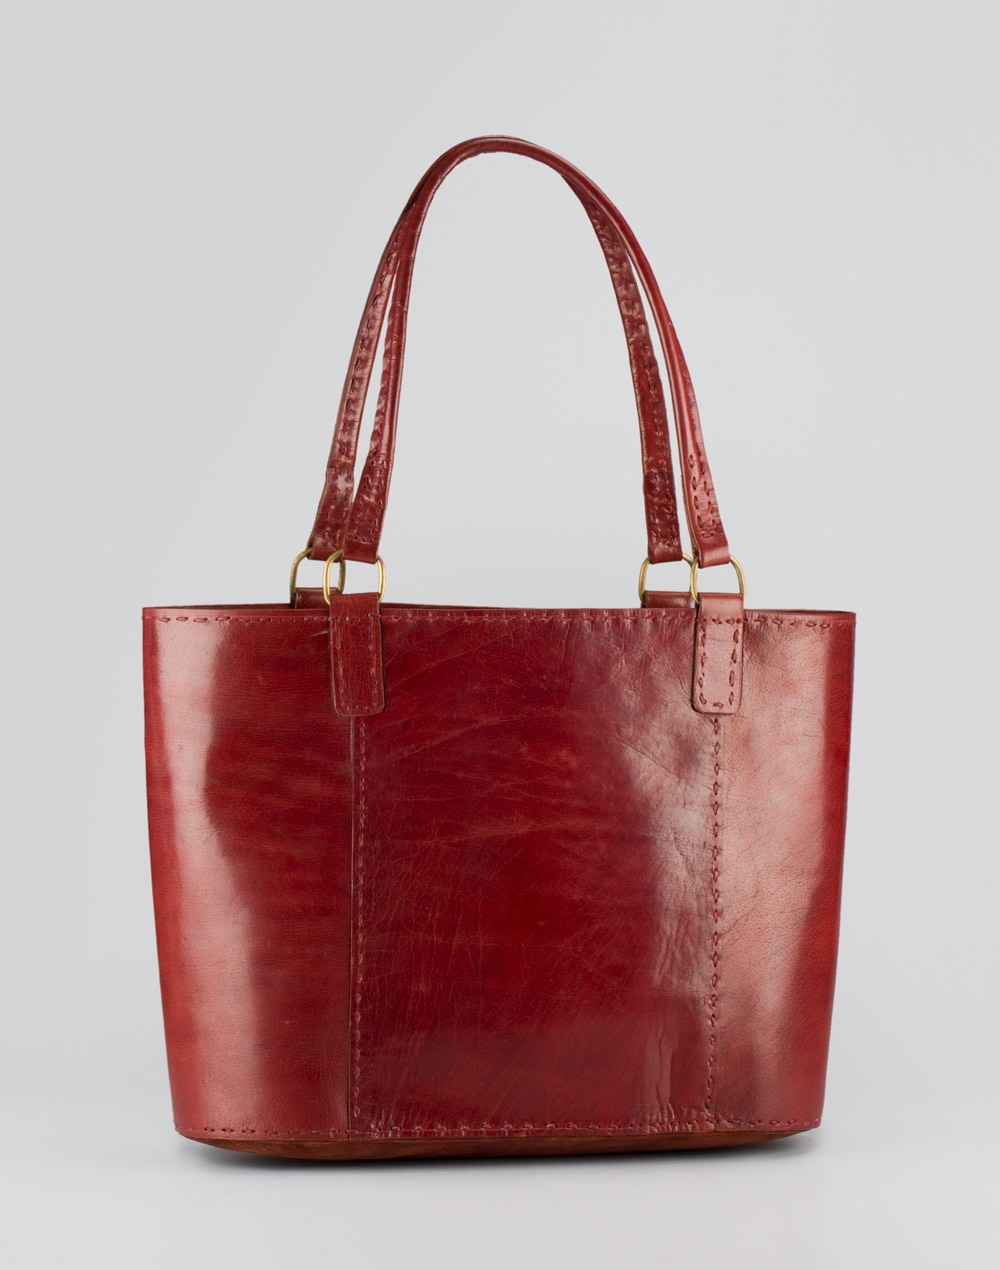 Fabindia Leather Solid Tote Bag